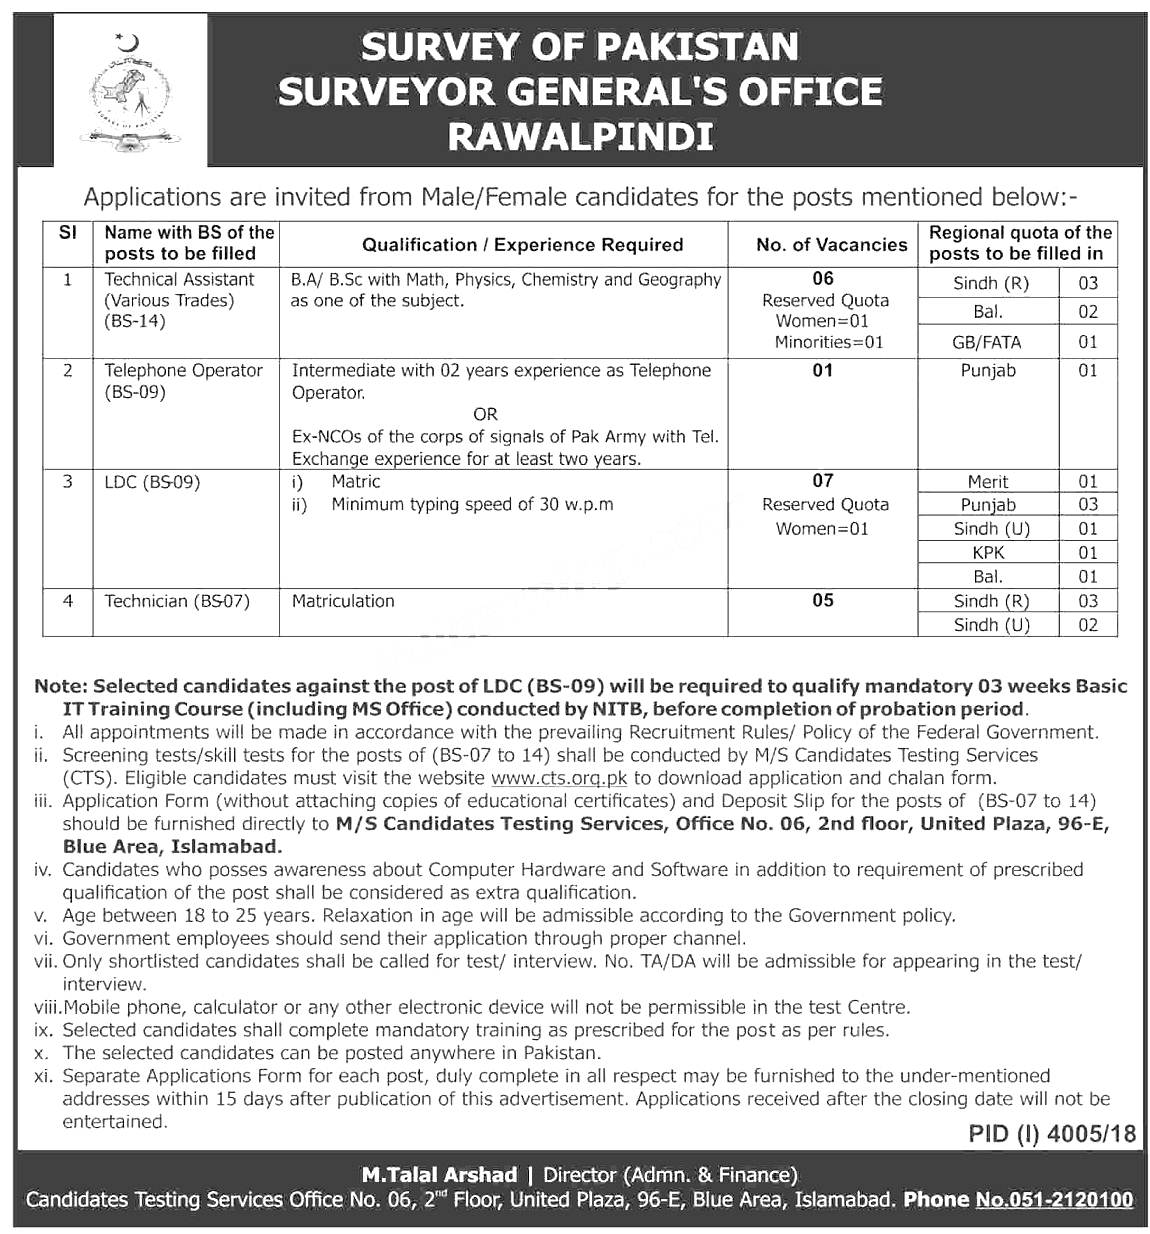 Surveyor General Office Rawalpindi Jobs 2019 CTS Test Application Form Candidates List